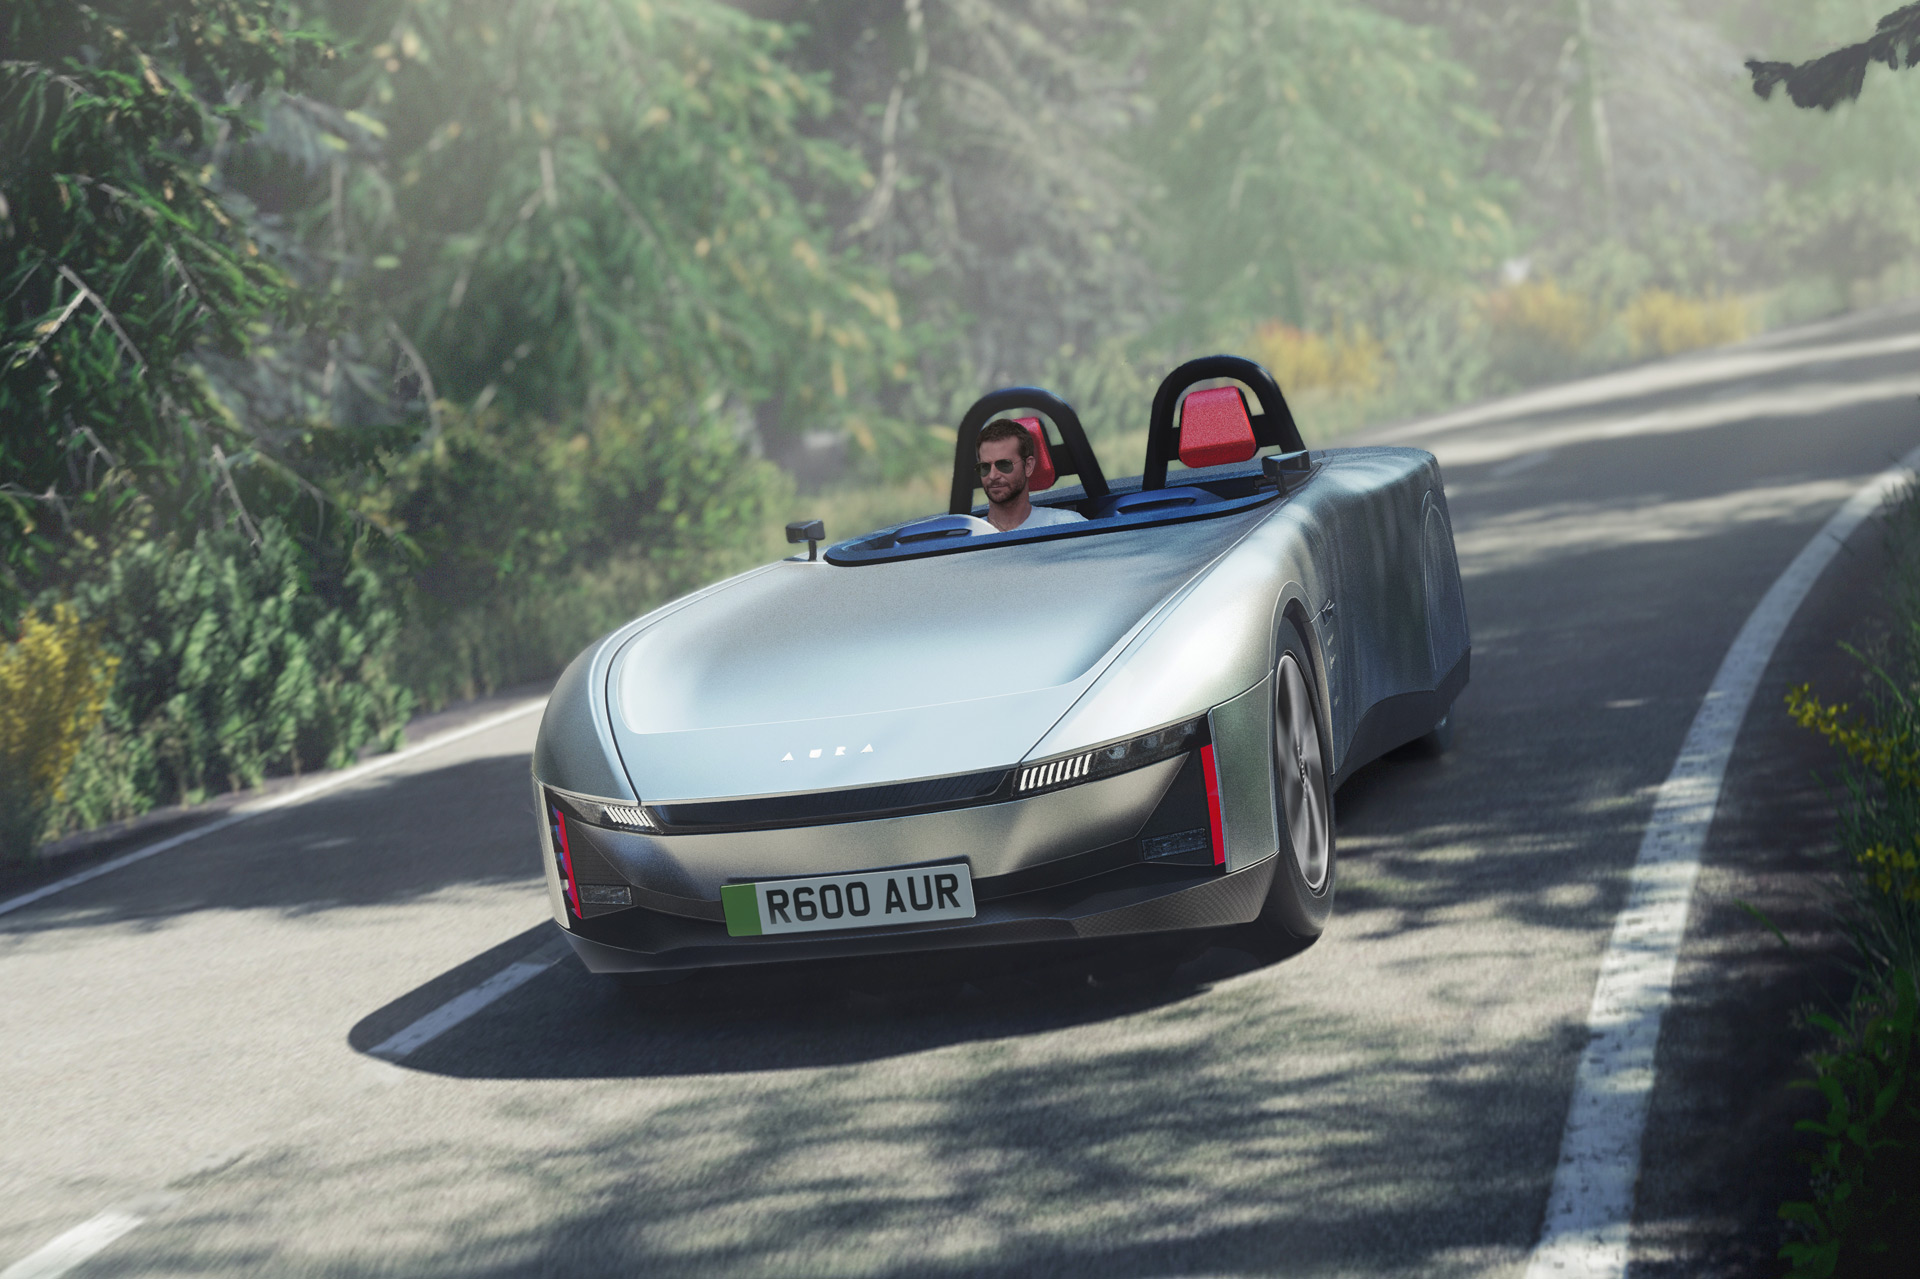 400-mile electric British roadster: UK funds enable a glimpse of the future